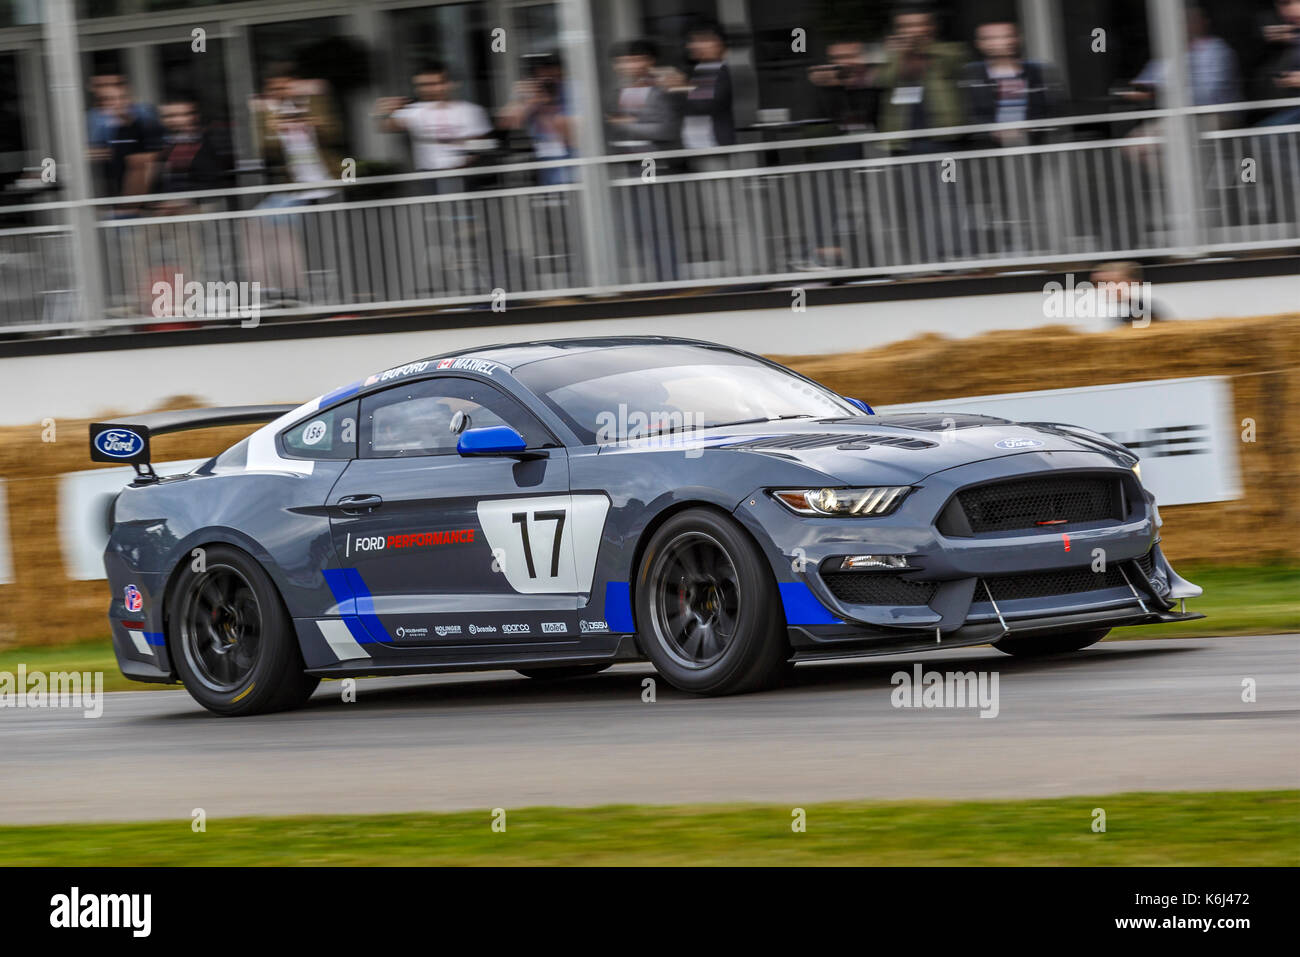 2017 ford mustang gt4 endurance racer with driver billy johnson at